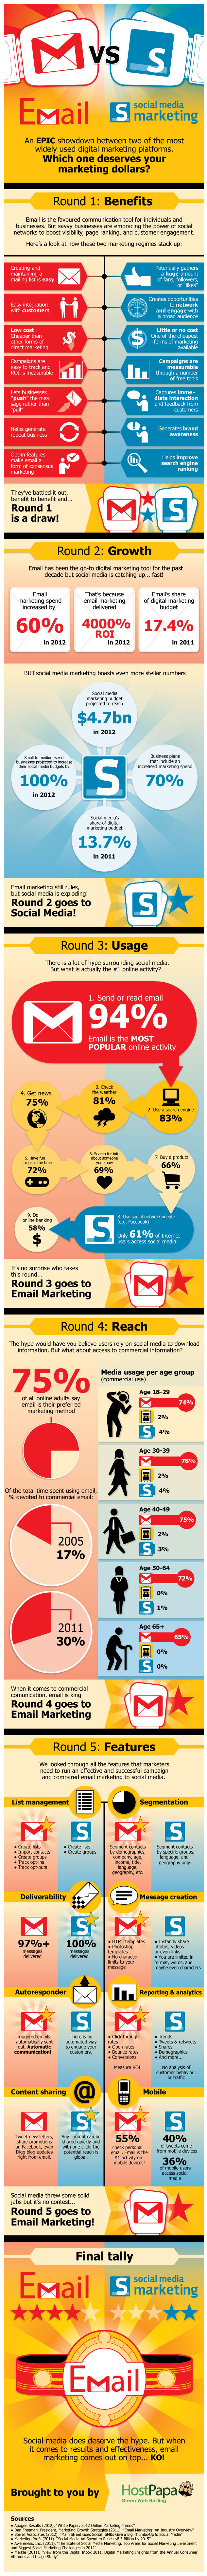 email-versus-social-infographic